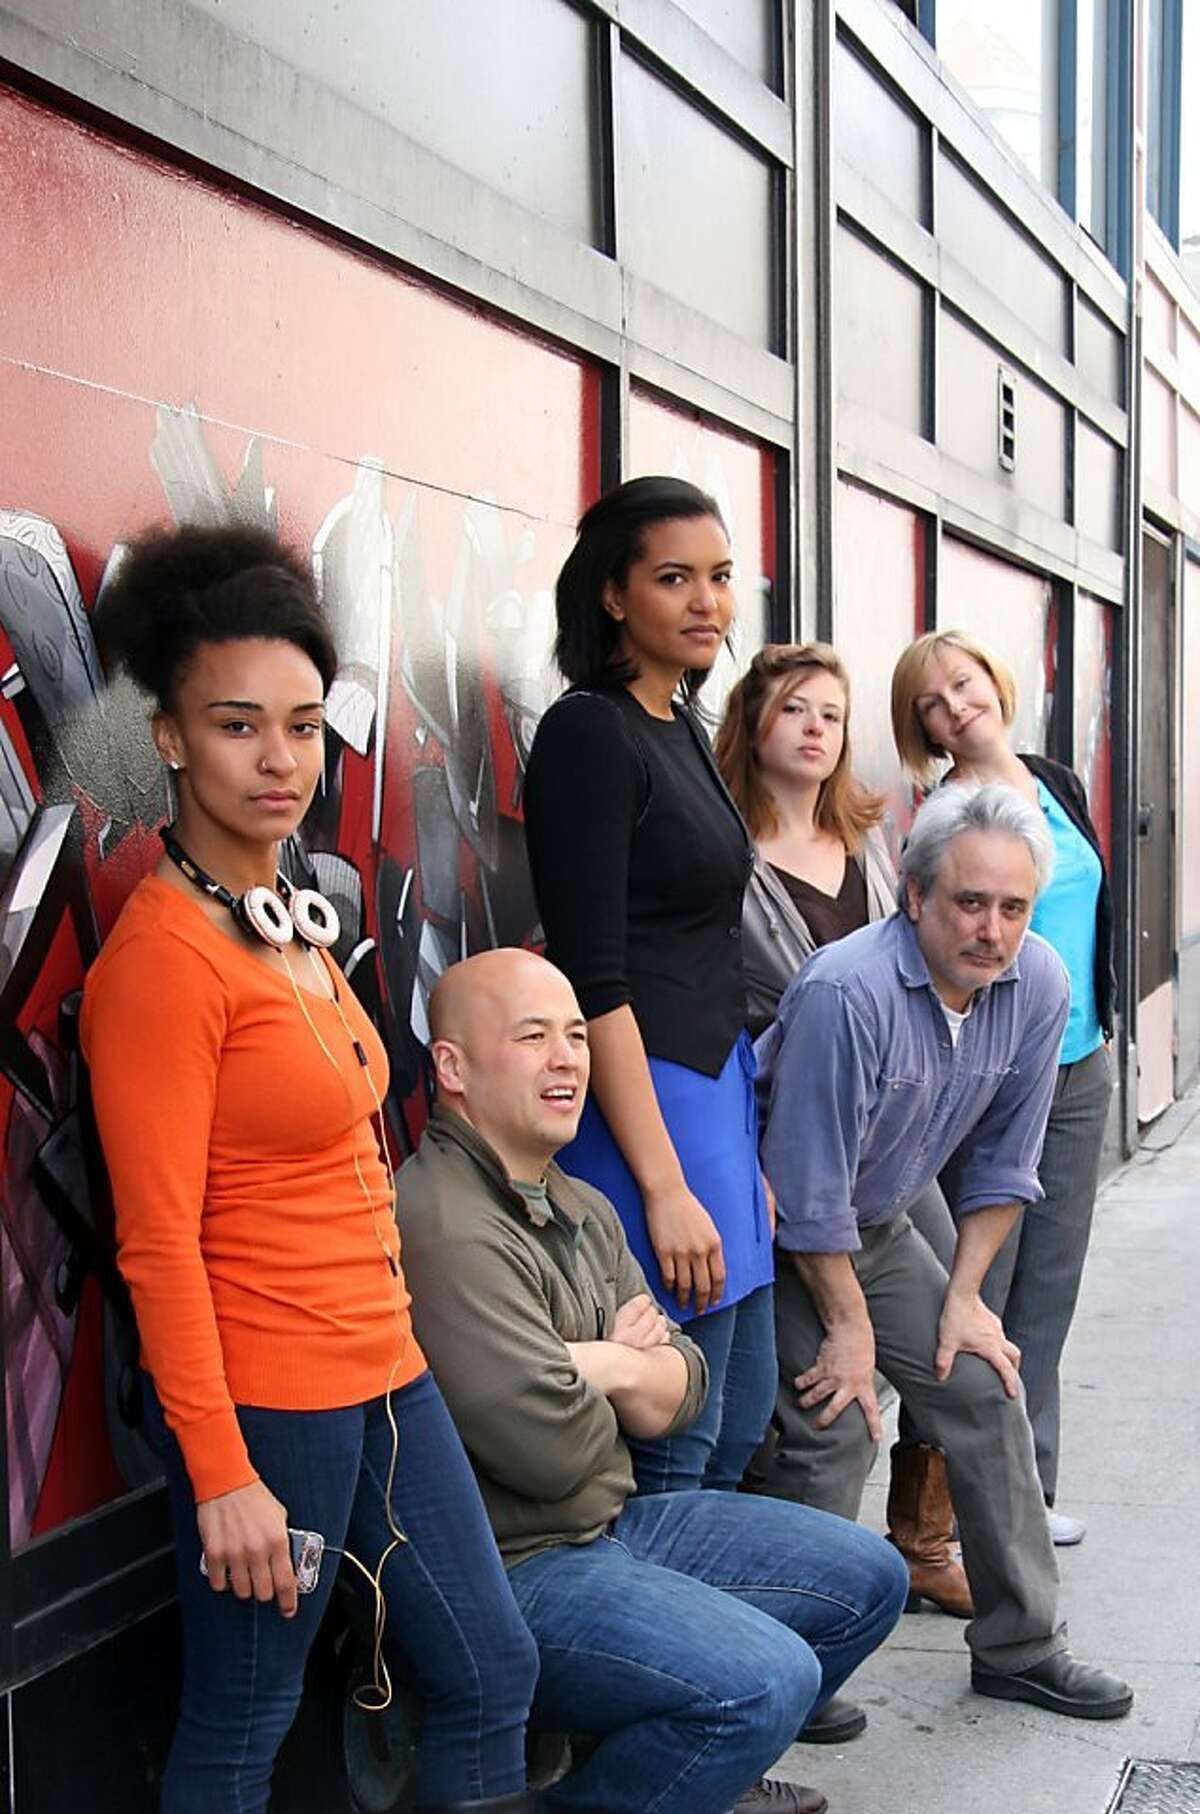 (l to r) Tristan Cunningham, Michael Uy Kelly, Rebecca Frank, David Sinaiko, Leigh Shaw, and Siobhan Doherty tell the stories of people who work and live in the Tenderloin in Cutting Ball Theater's production.